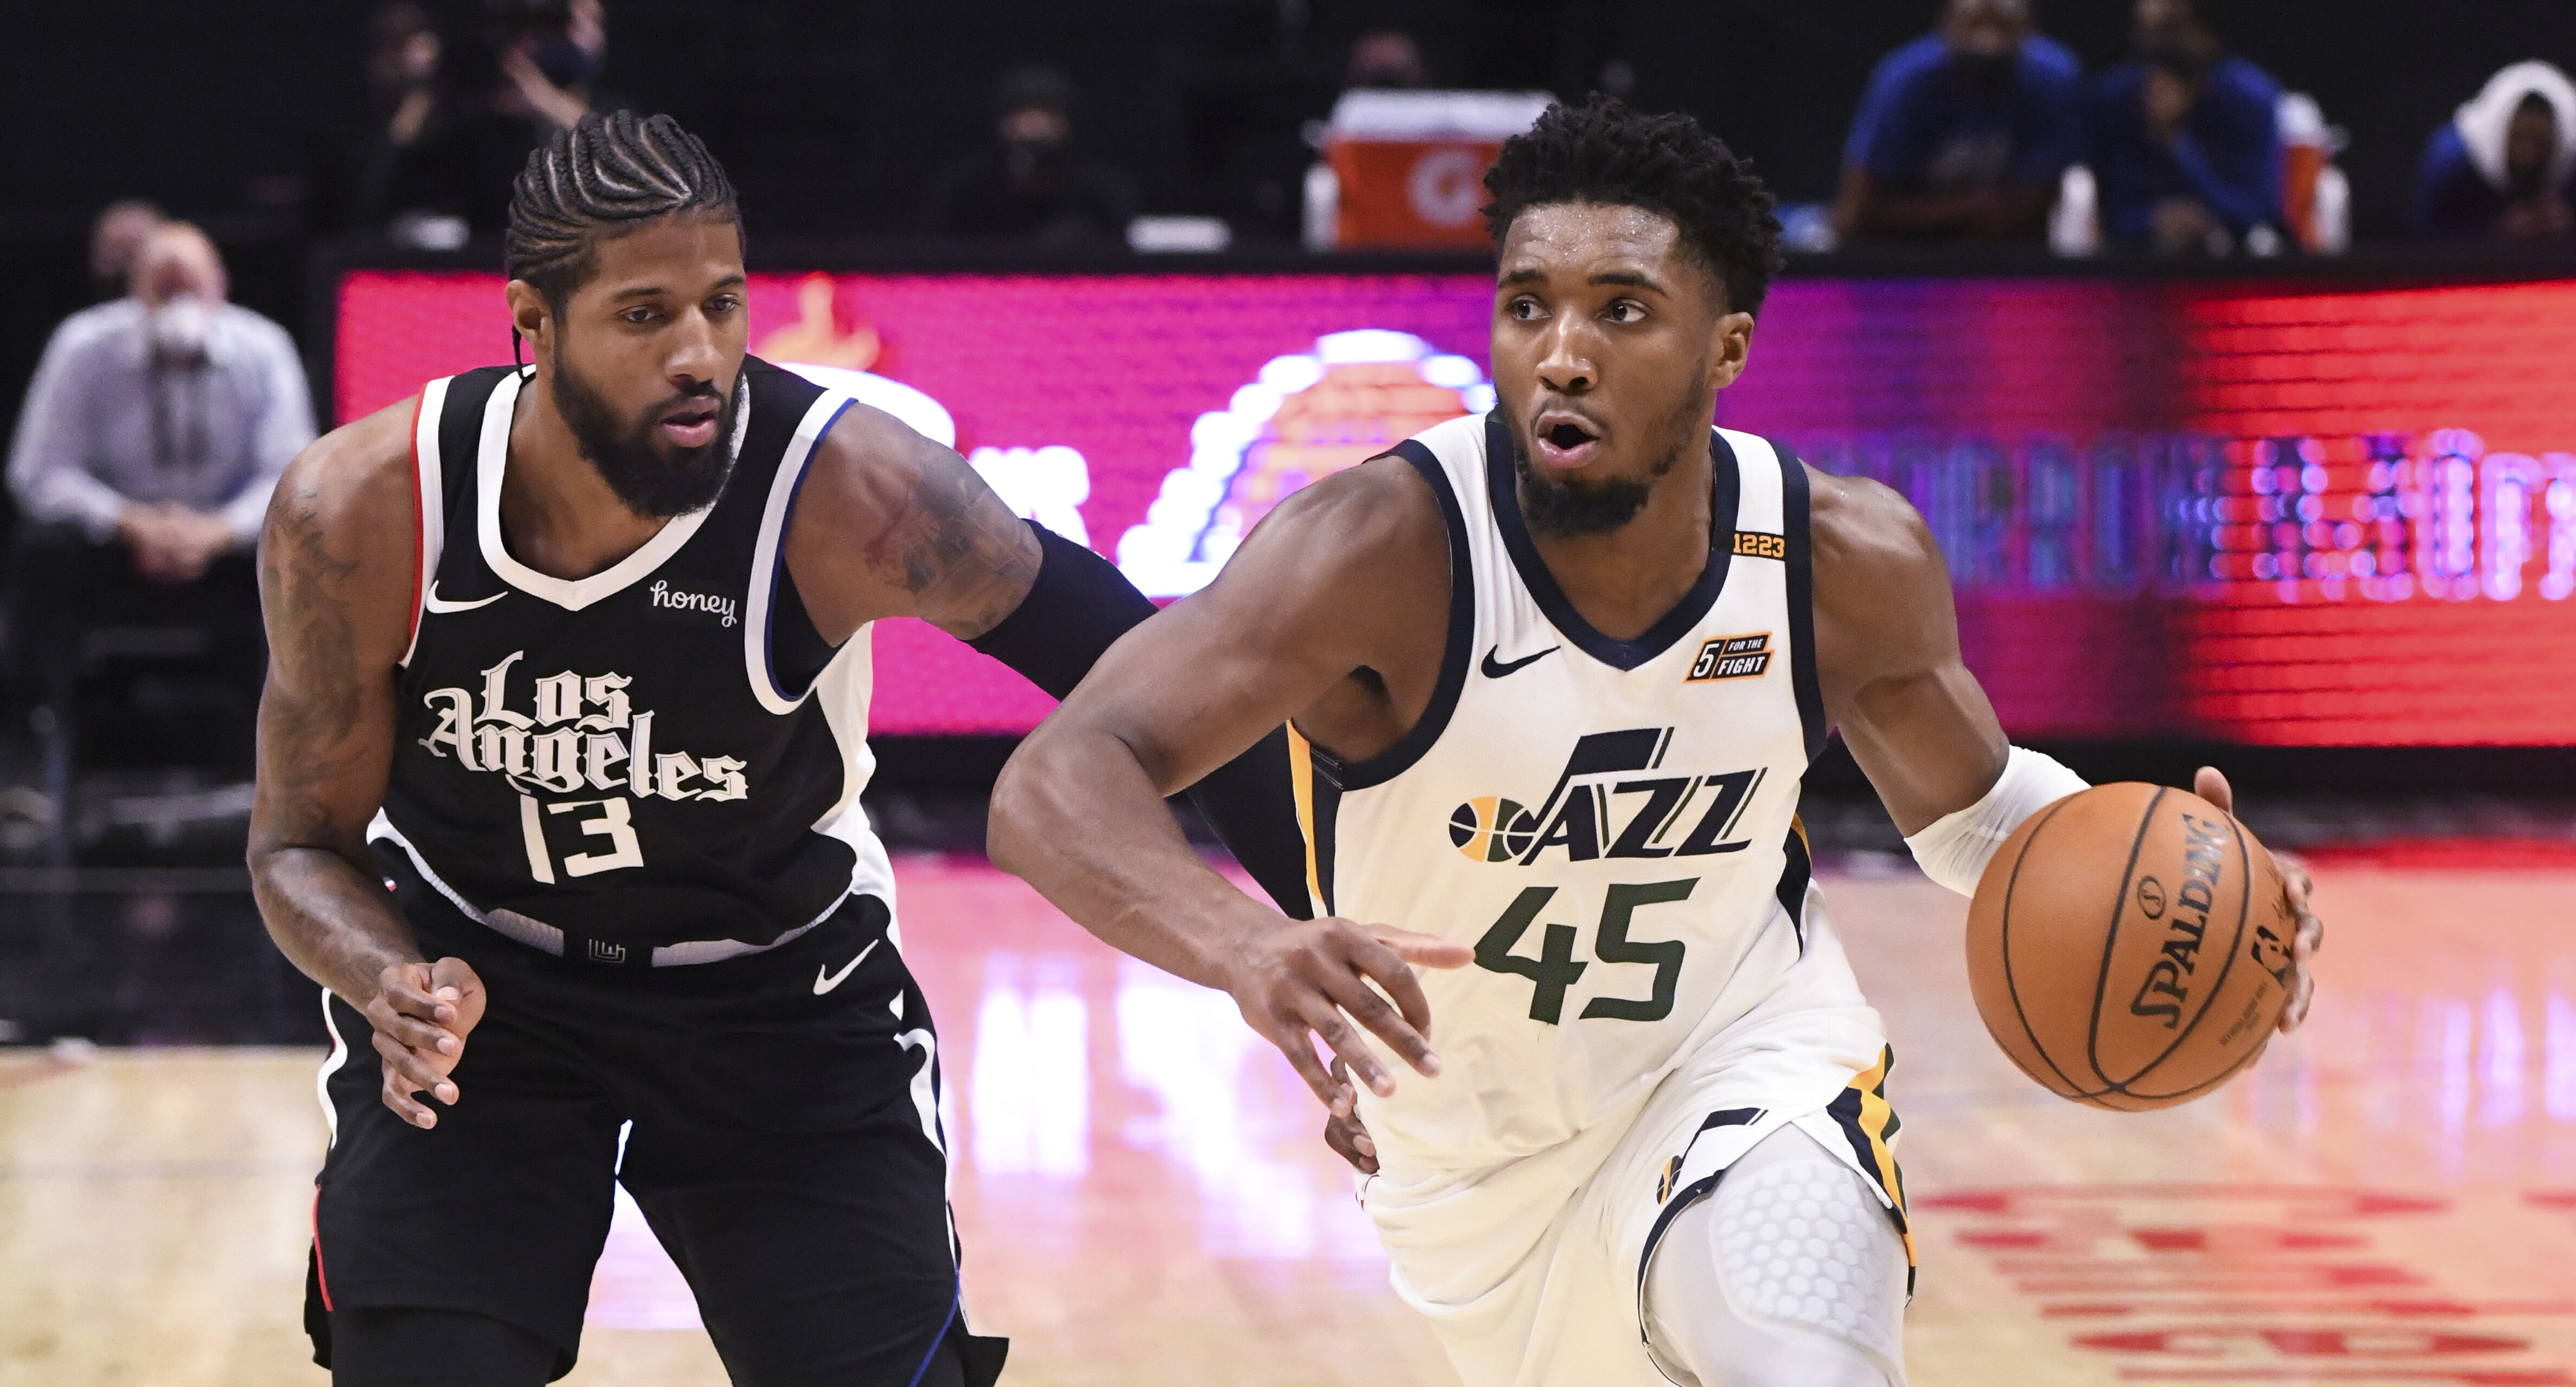 5 stats to know ahead of Jazz-Clippers on ABC